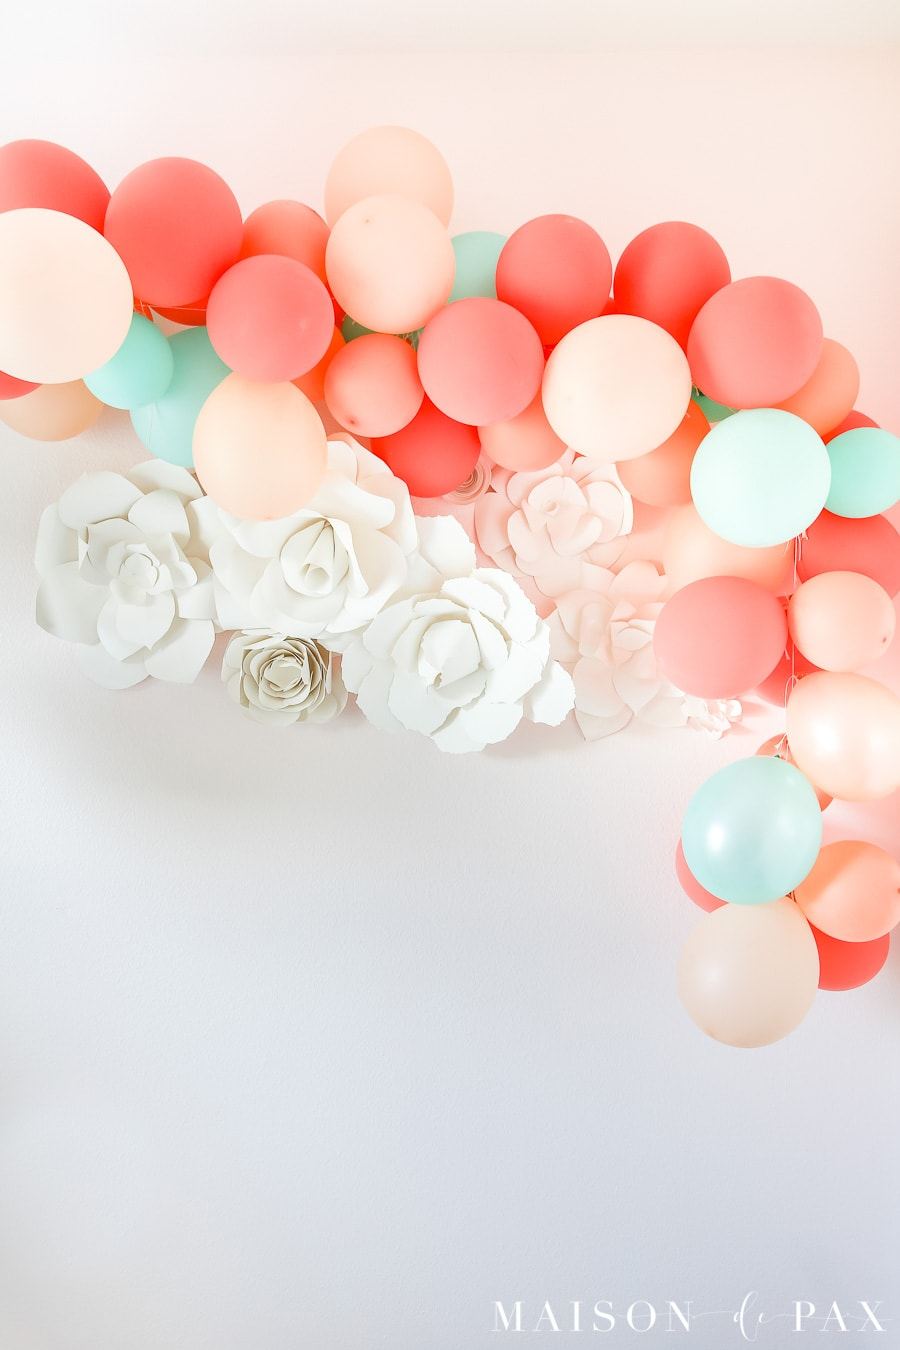 Balloon Garland Photo Backdrop- Maison de Pax